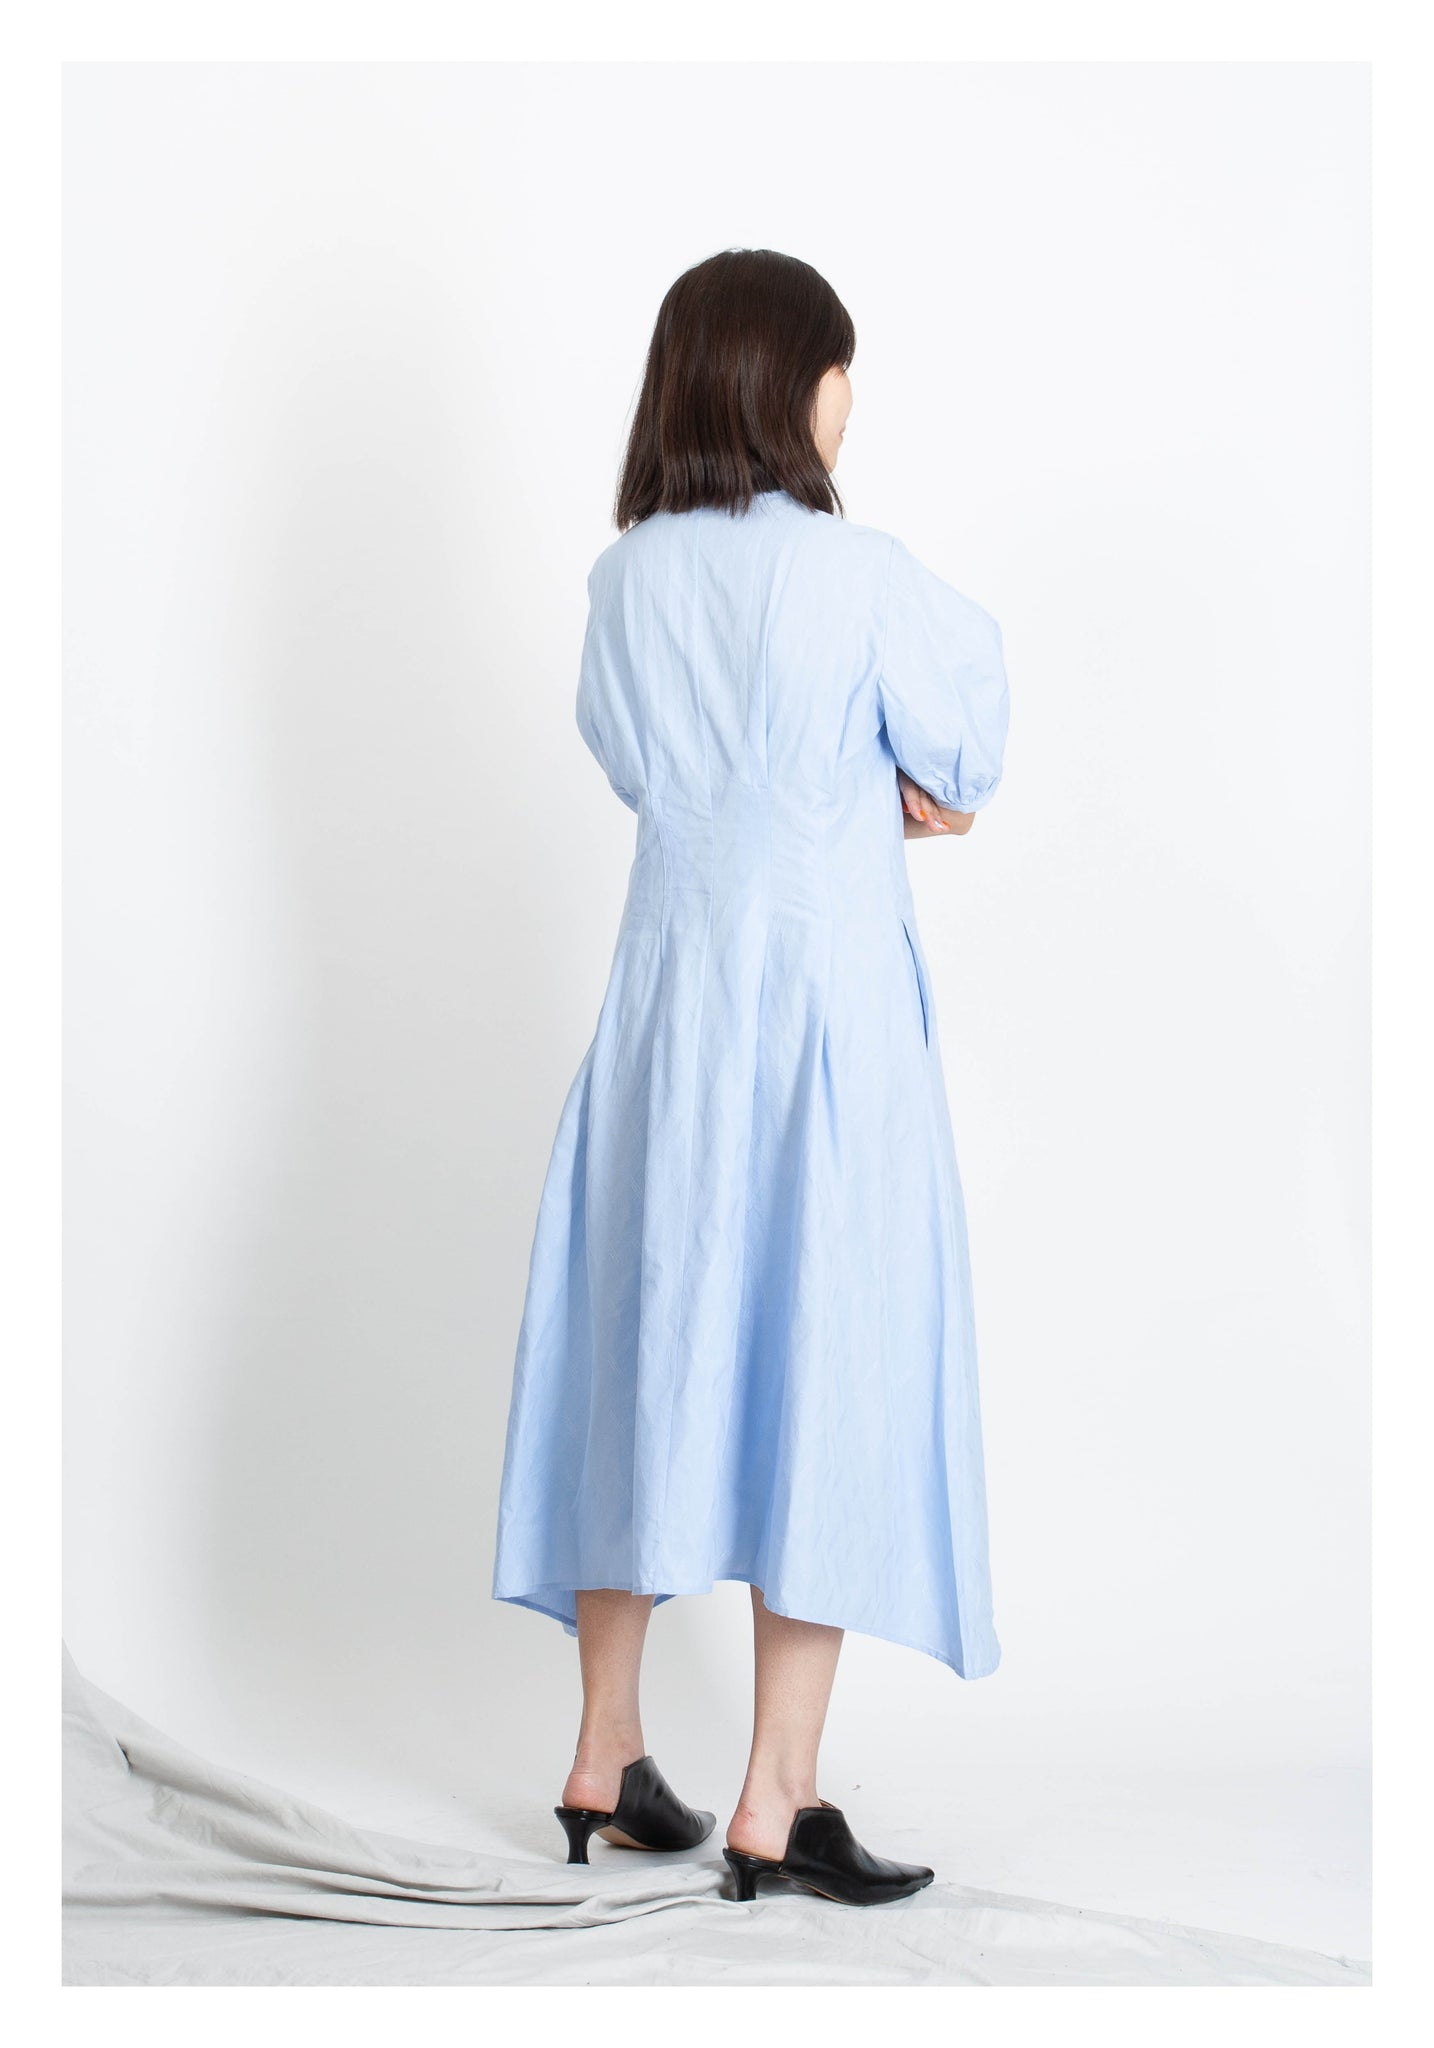 Embroidered Pattern Slim Cut Dress Light Blue - whoami